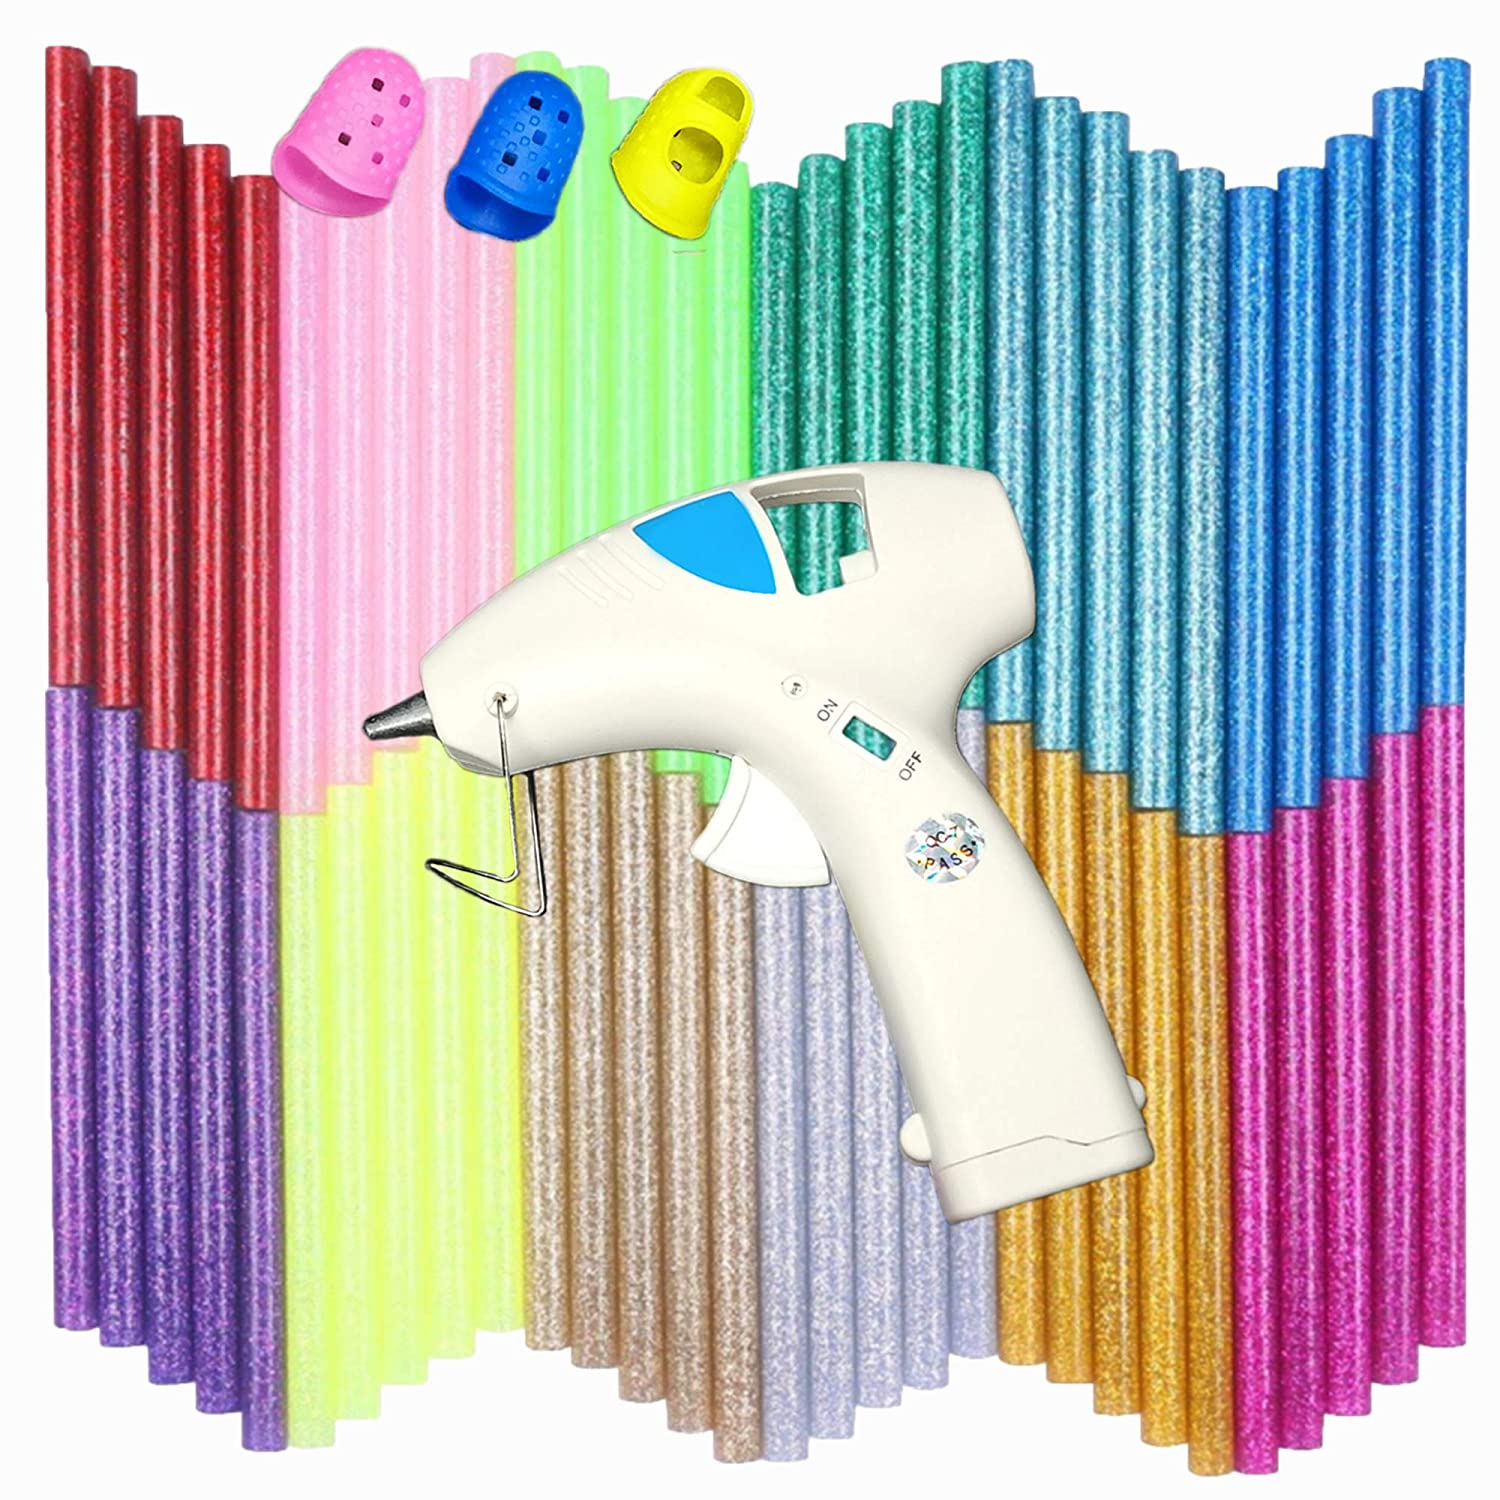 NEX& CO Cordless Hot Glue Gun with Glue Sticks for Arts and Crafts - Portable 10W Battery Powered Low Temp Hot Melt Glue Gun Kit with 60 Colorful Refills Finger Protectors for Kids Boys Girls Adults NEW-WXJQ-WH